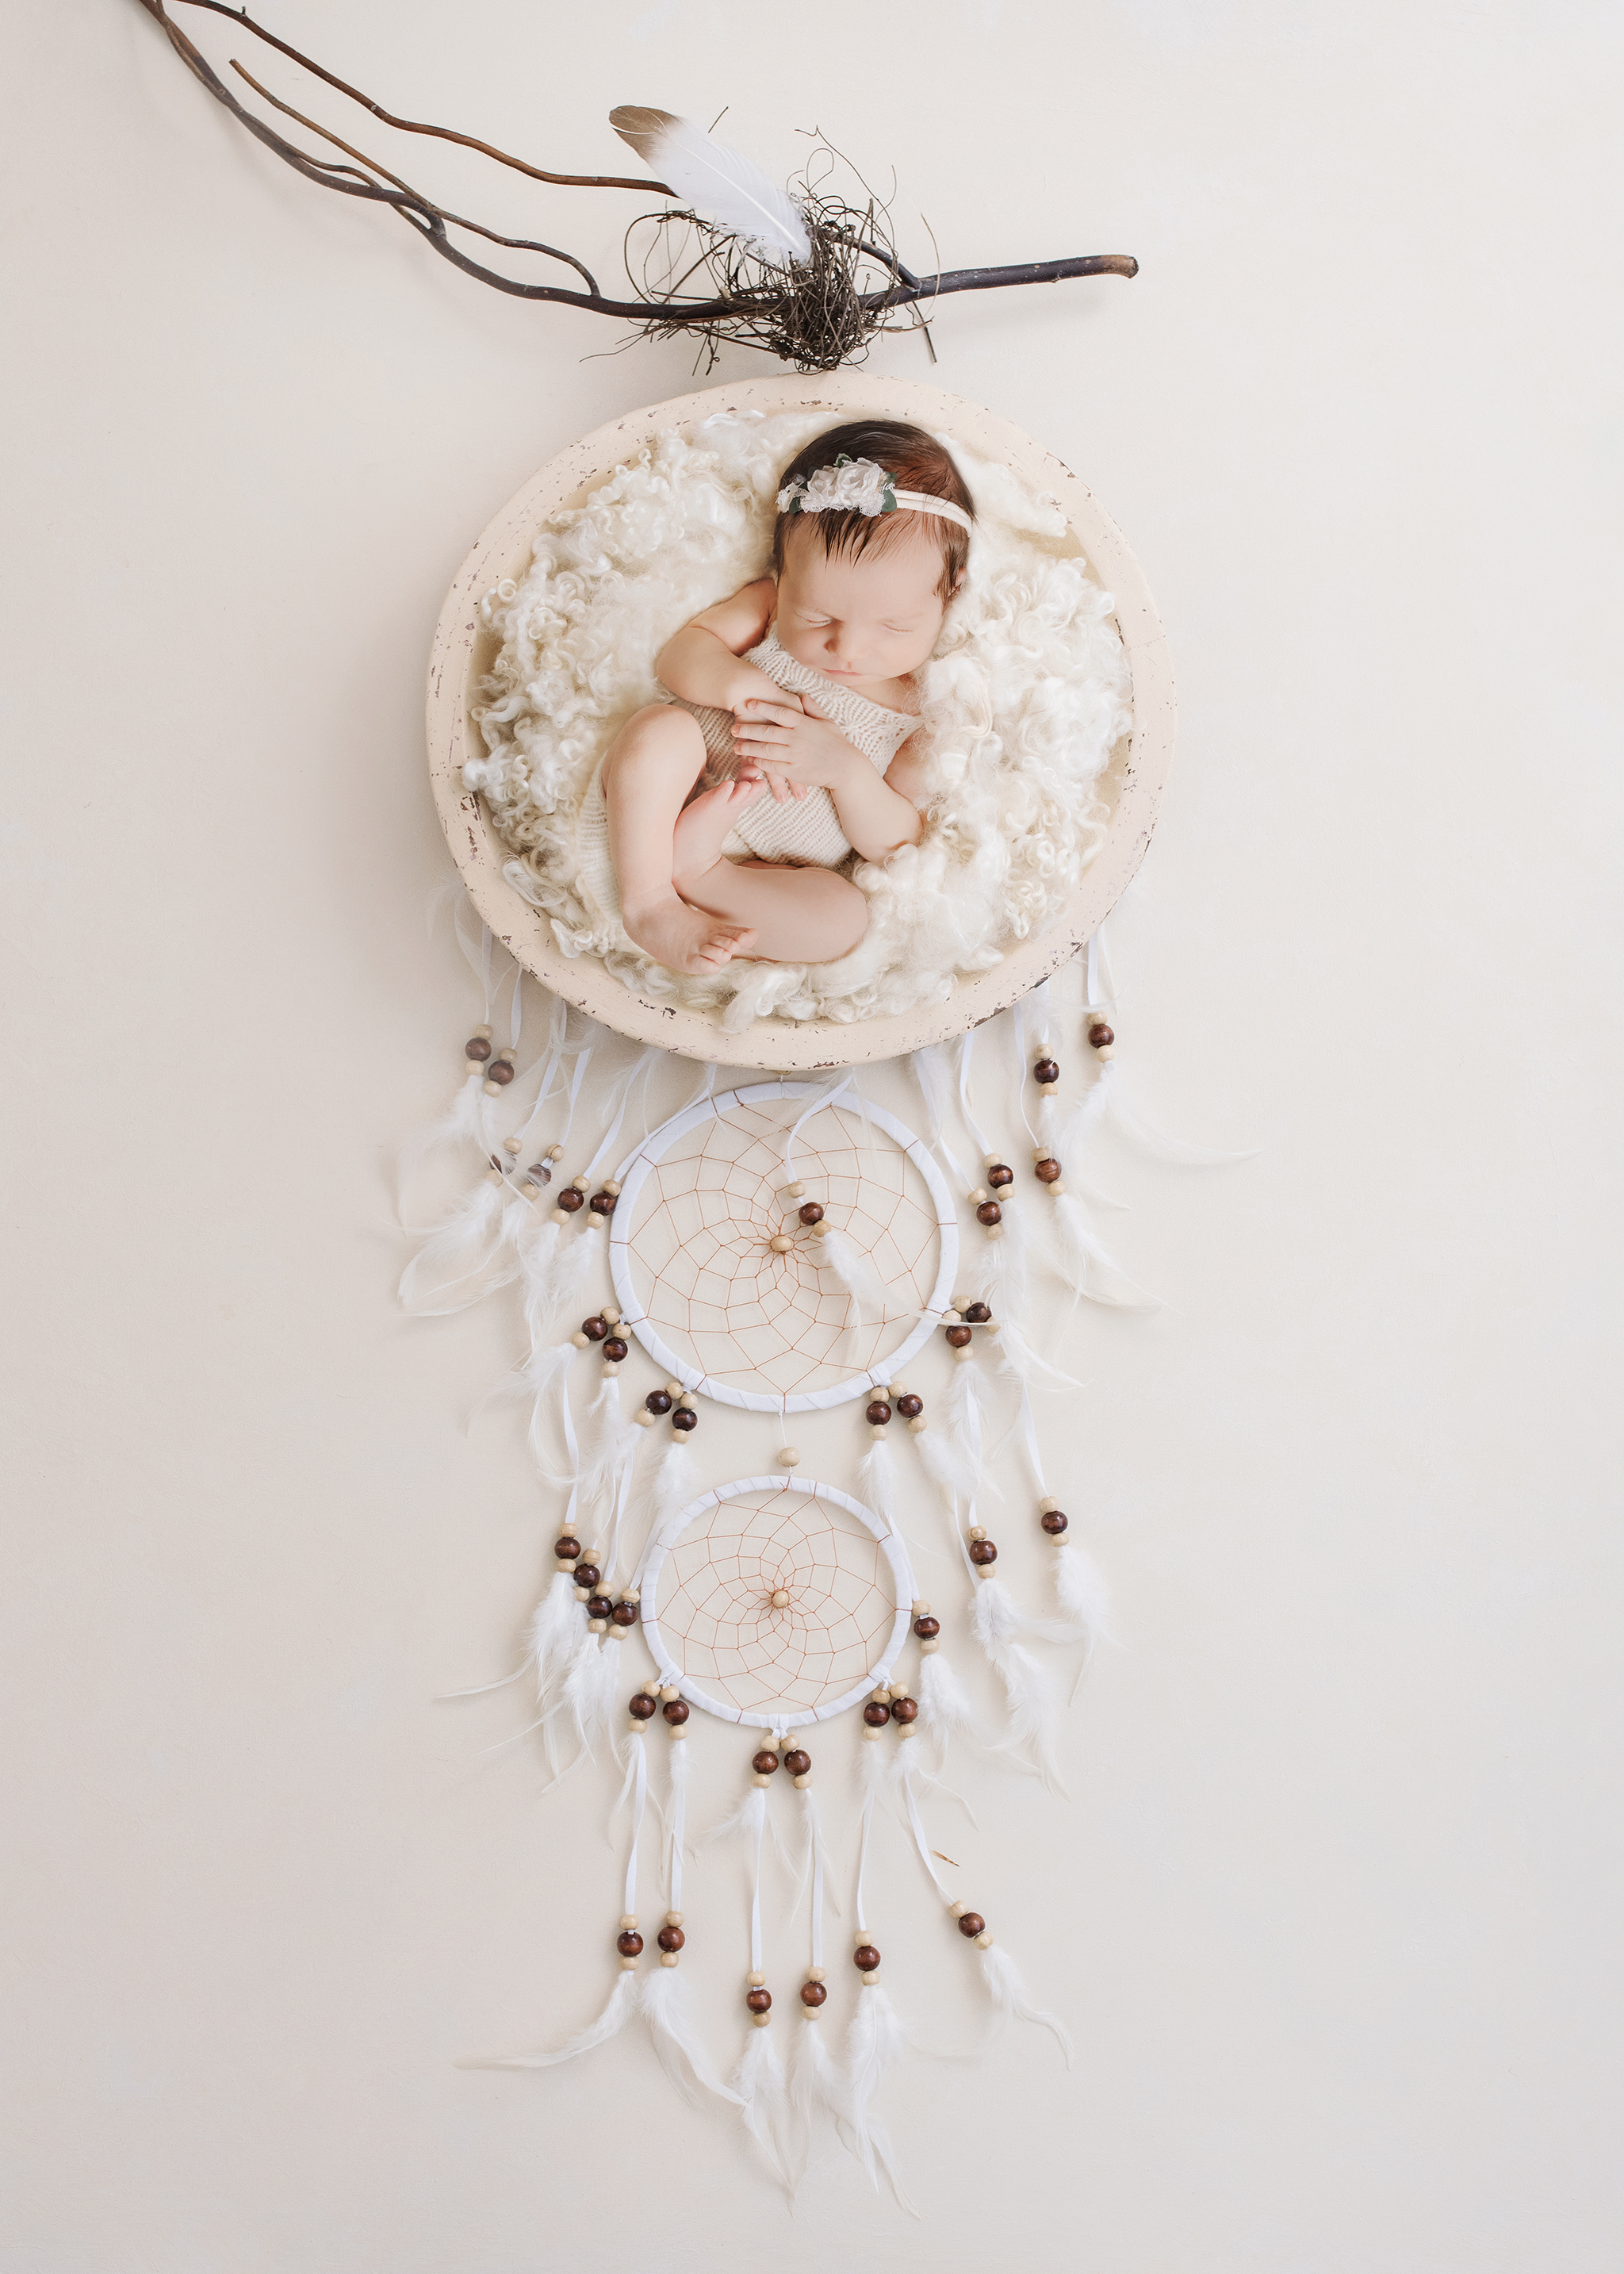 Edmonton Maternity Newborn Photographer_Baby Winnie 13.jpg